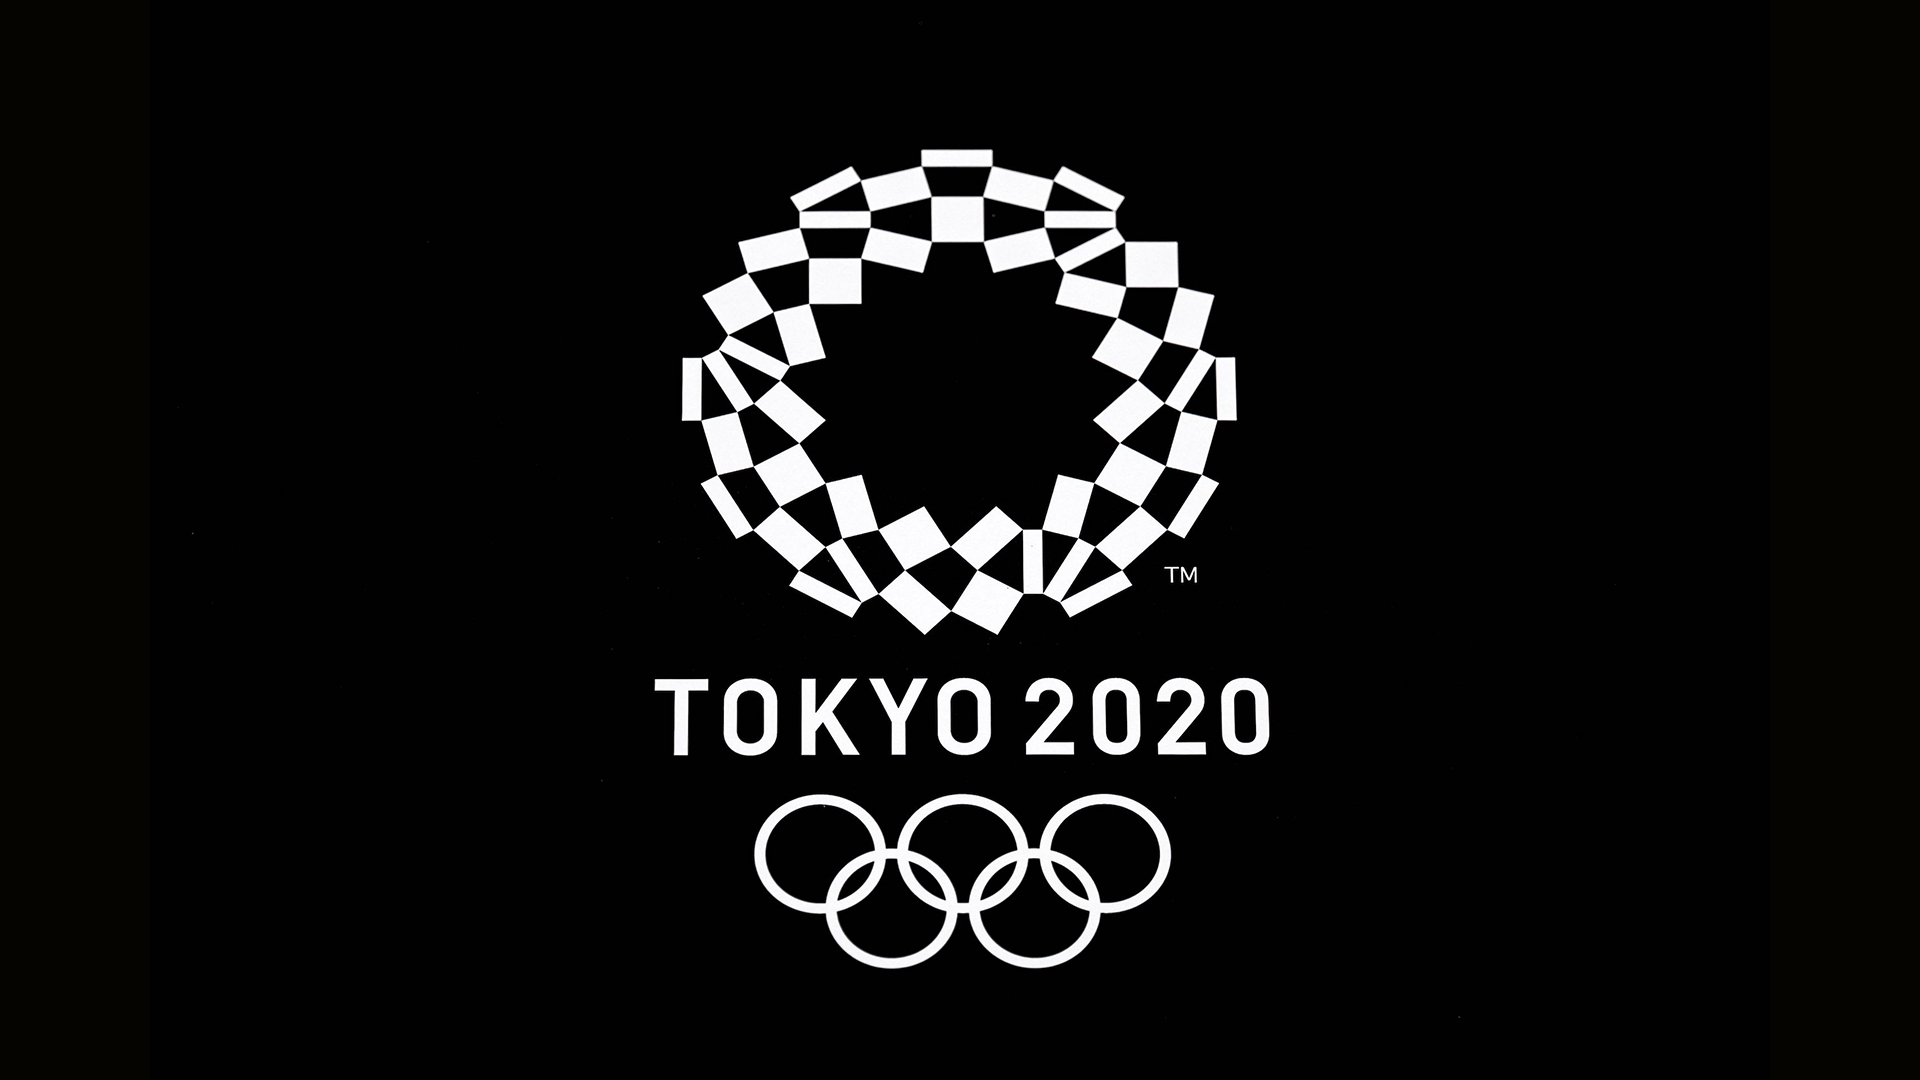 2020 Tokyo Olympic Central